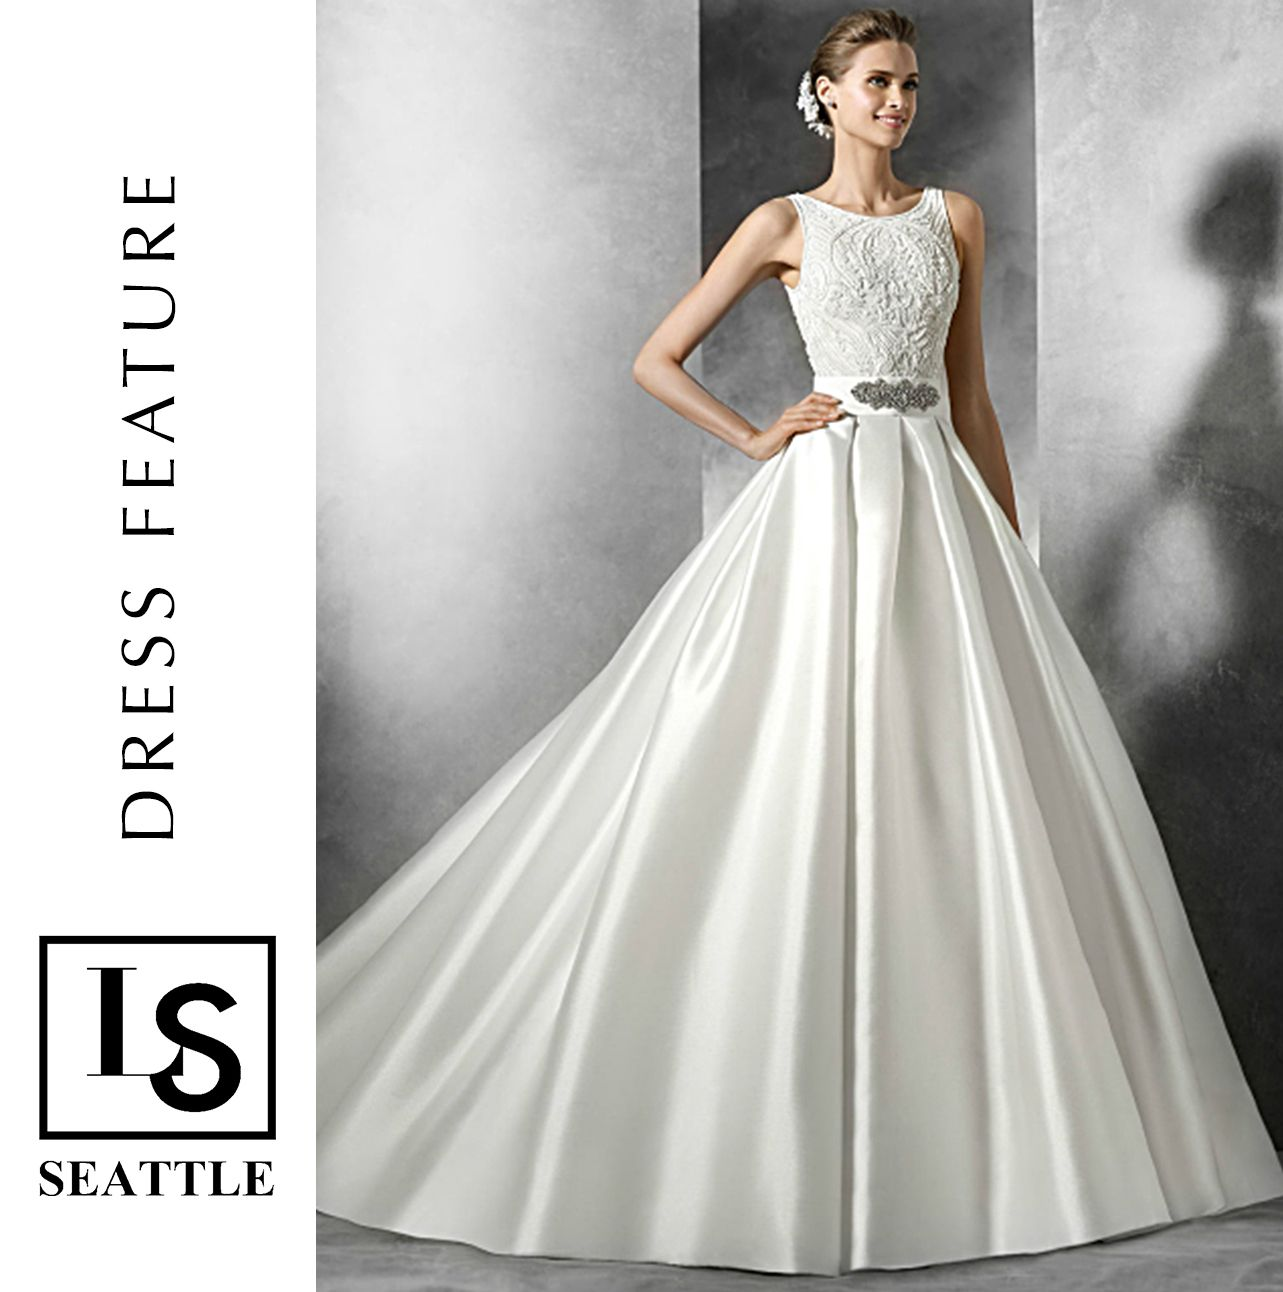 Seattle Wedding Show - Best Wedding Dresses from Le Salon Bridal ...